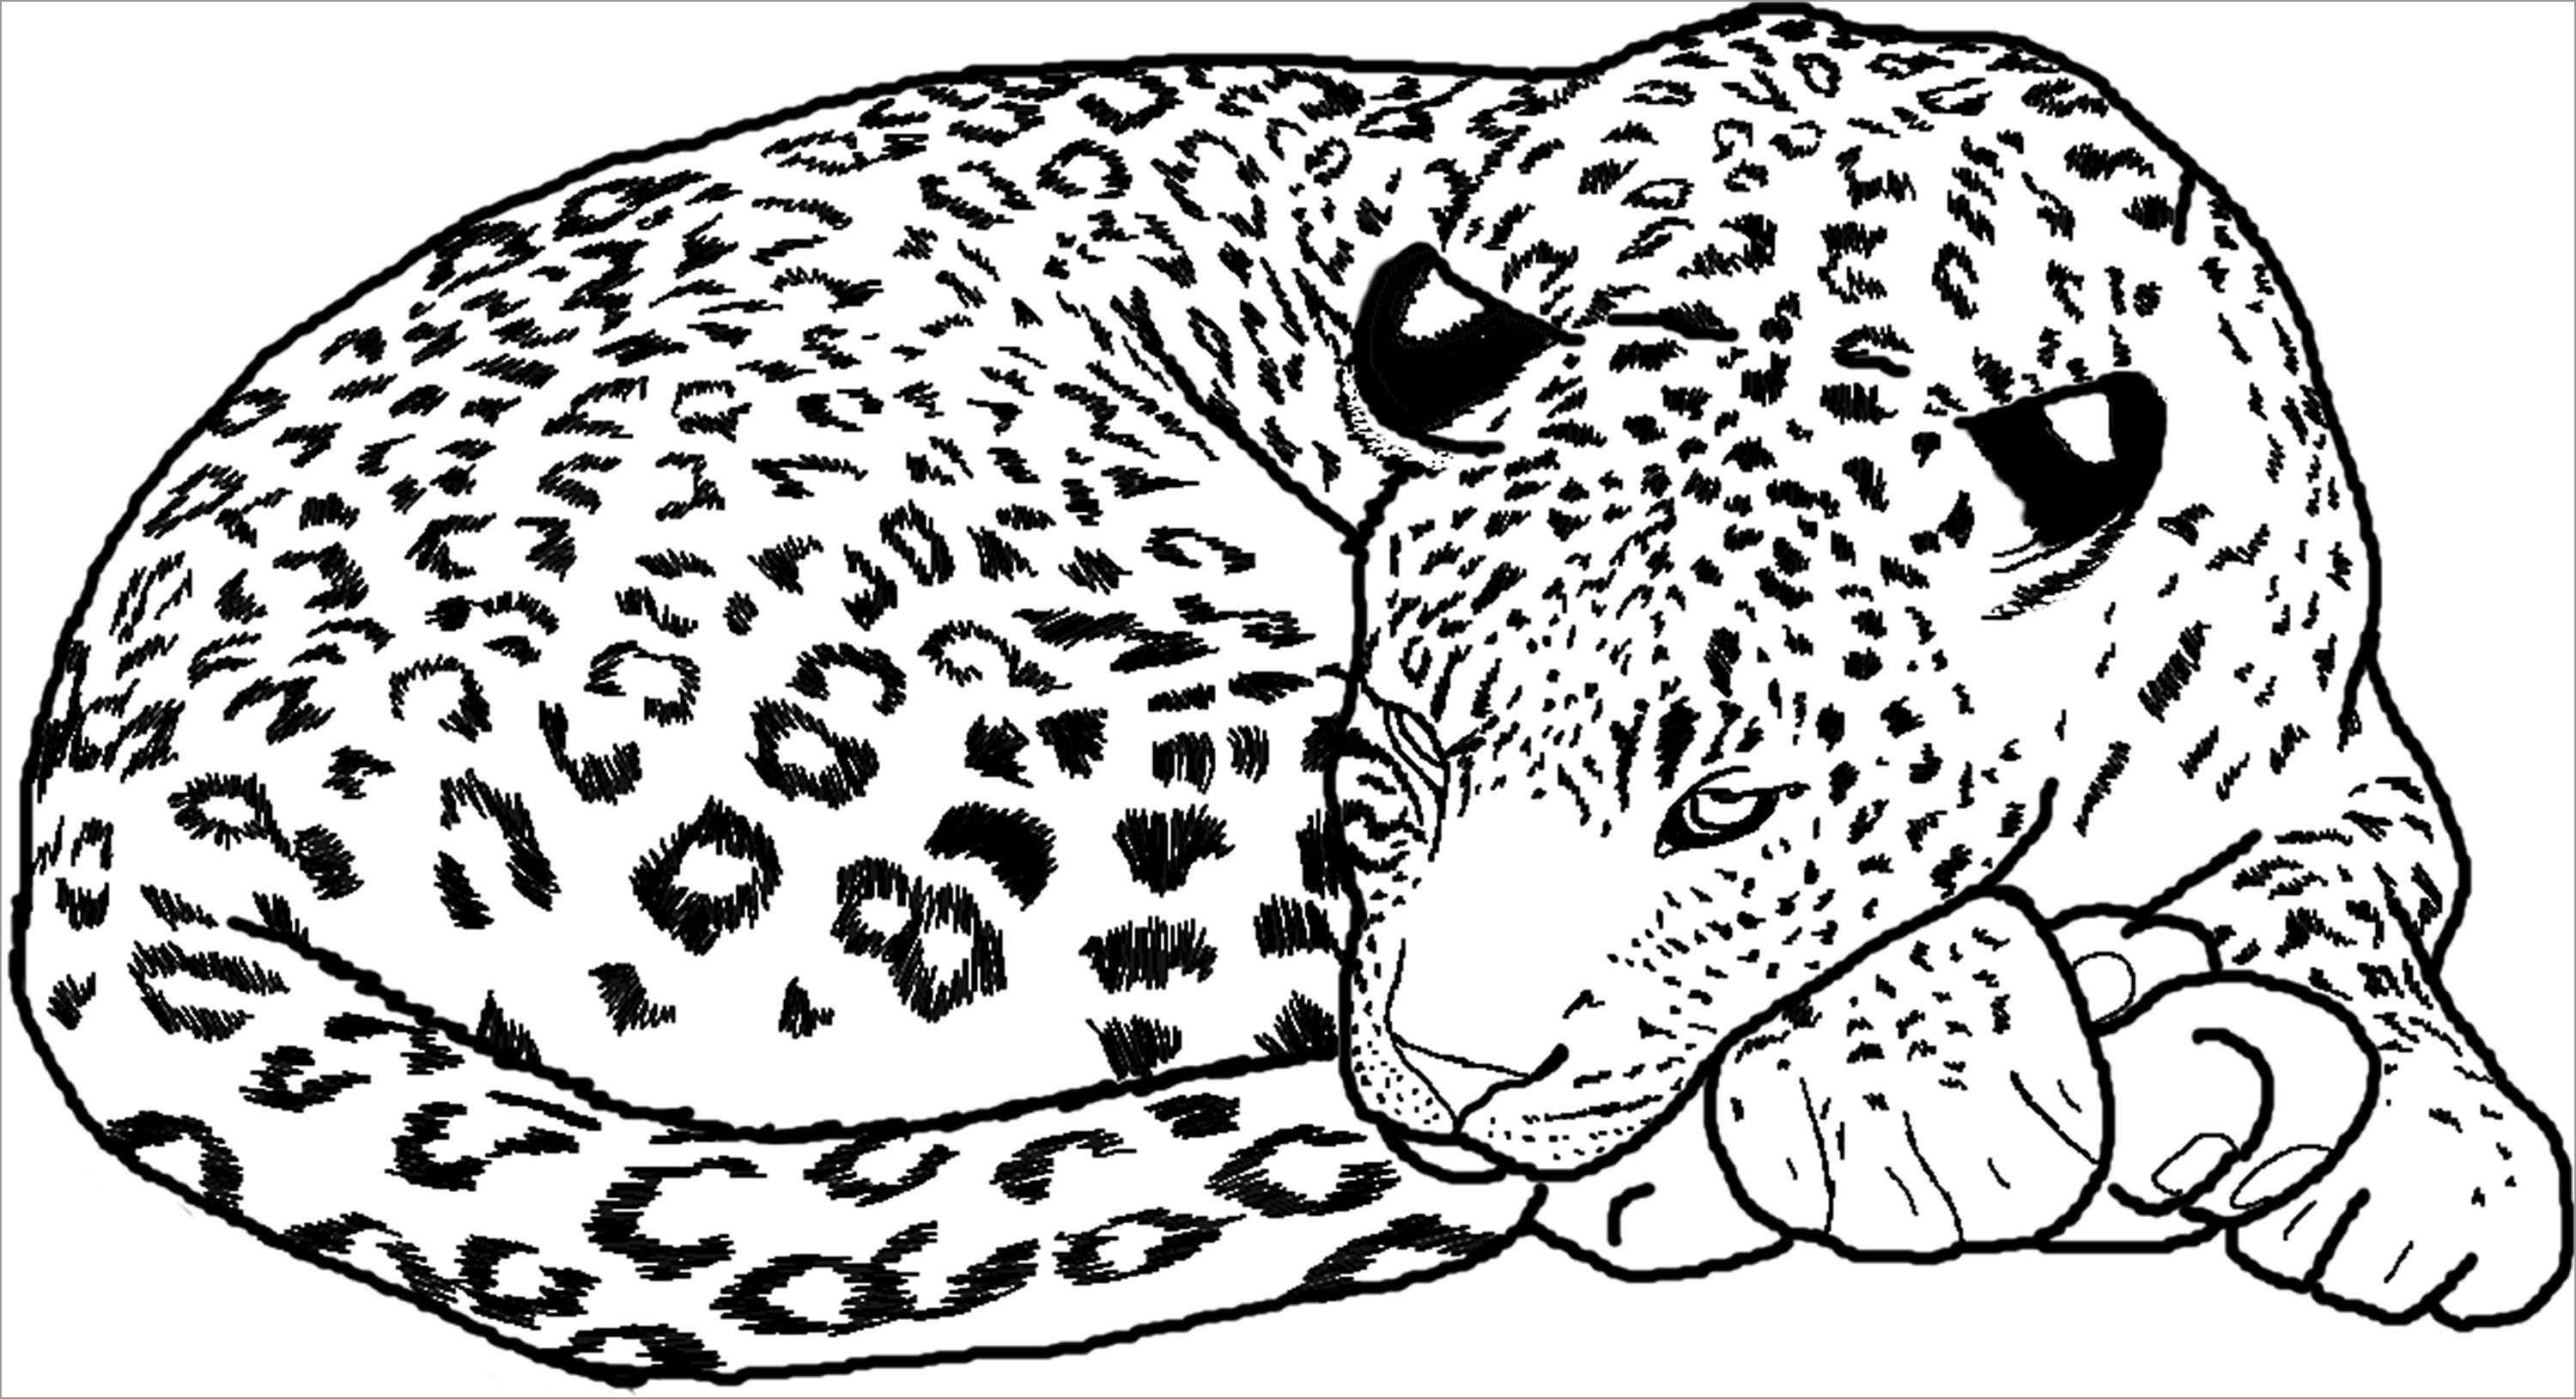 Free Printable Cheetah Coloring Pages For Kids - Coloringbay - Free Printable Cheetah Pictures